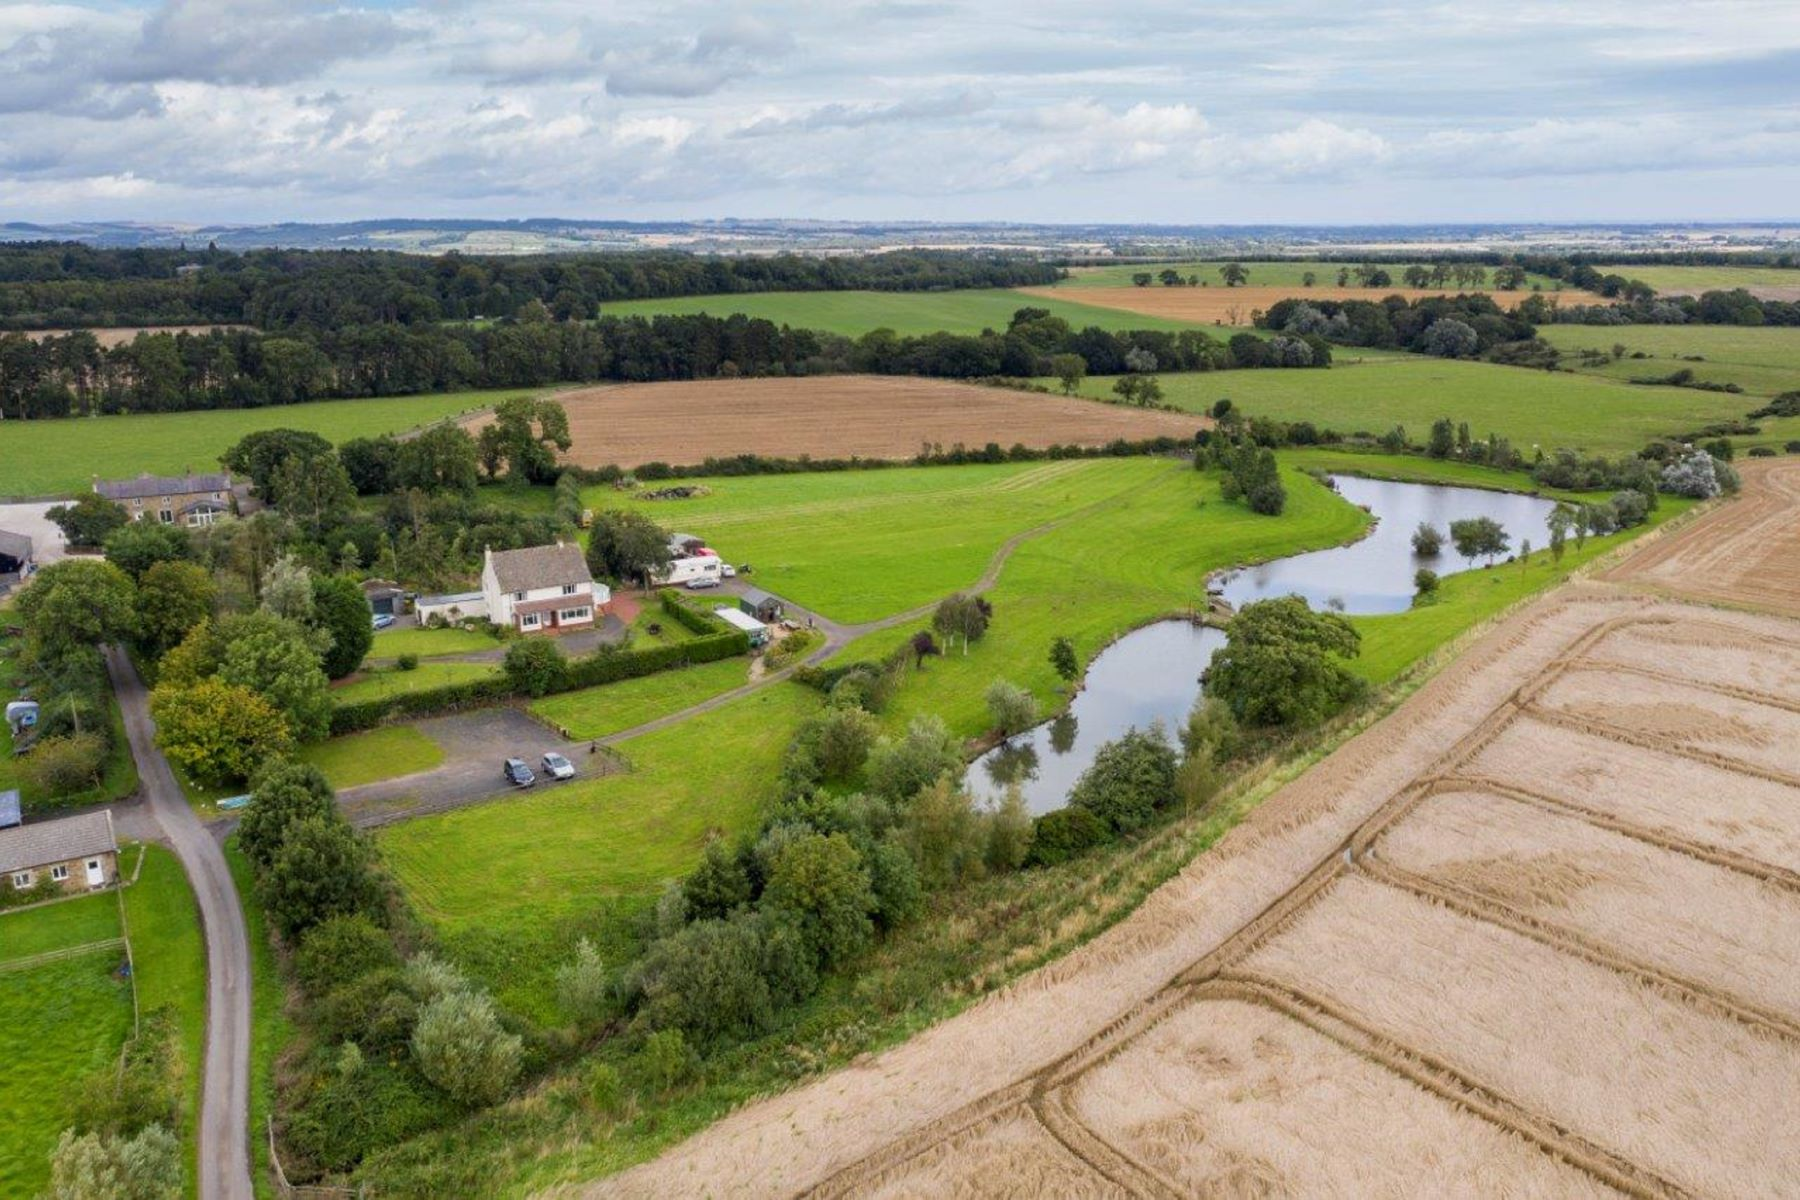 Farm / Ranch / Plantation for Sale at South Linden Fisheries Longhorsley Morpeth, England NE65 8TB United Kingdom